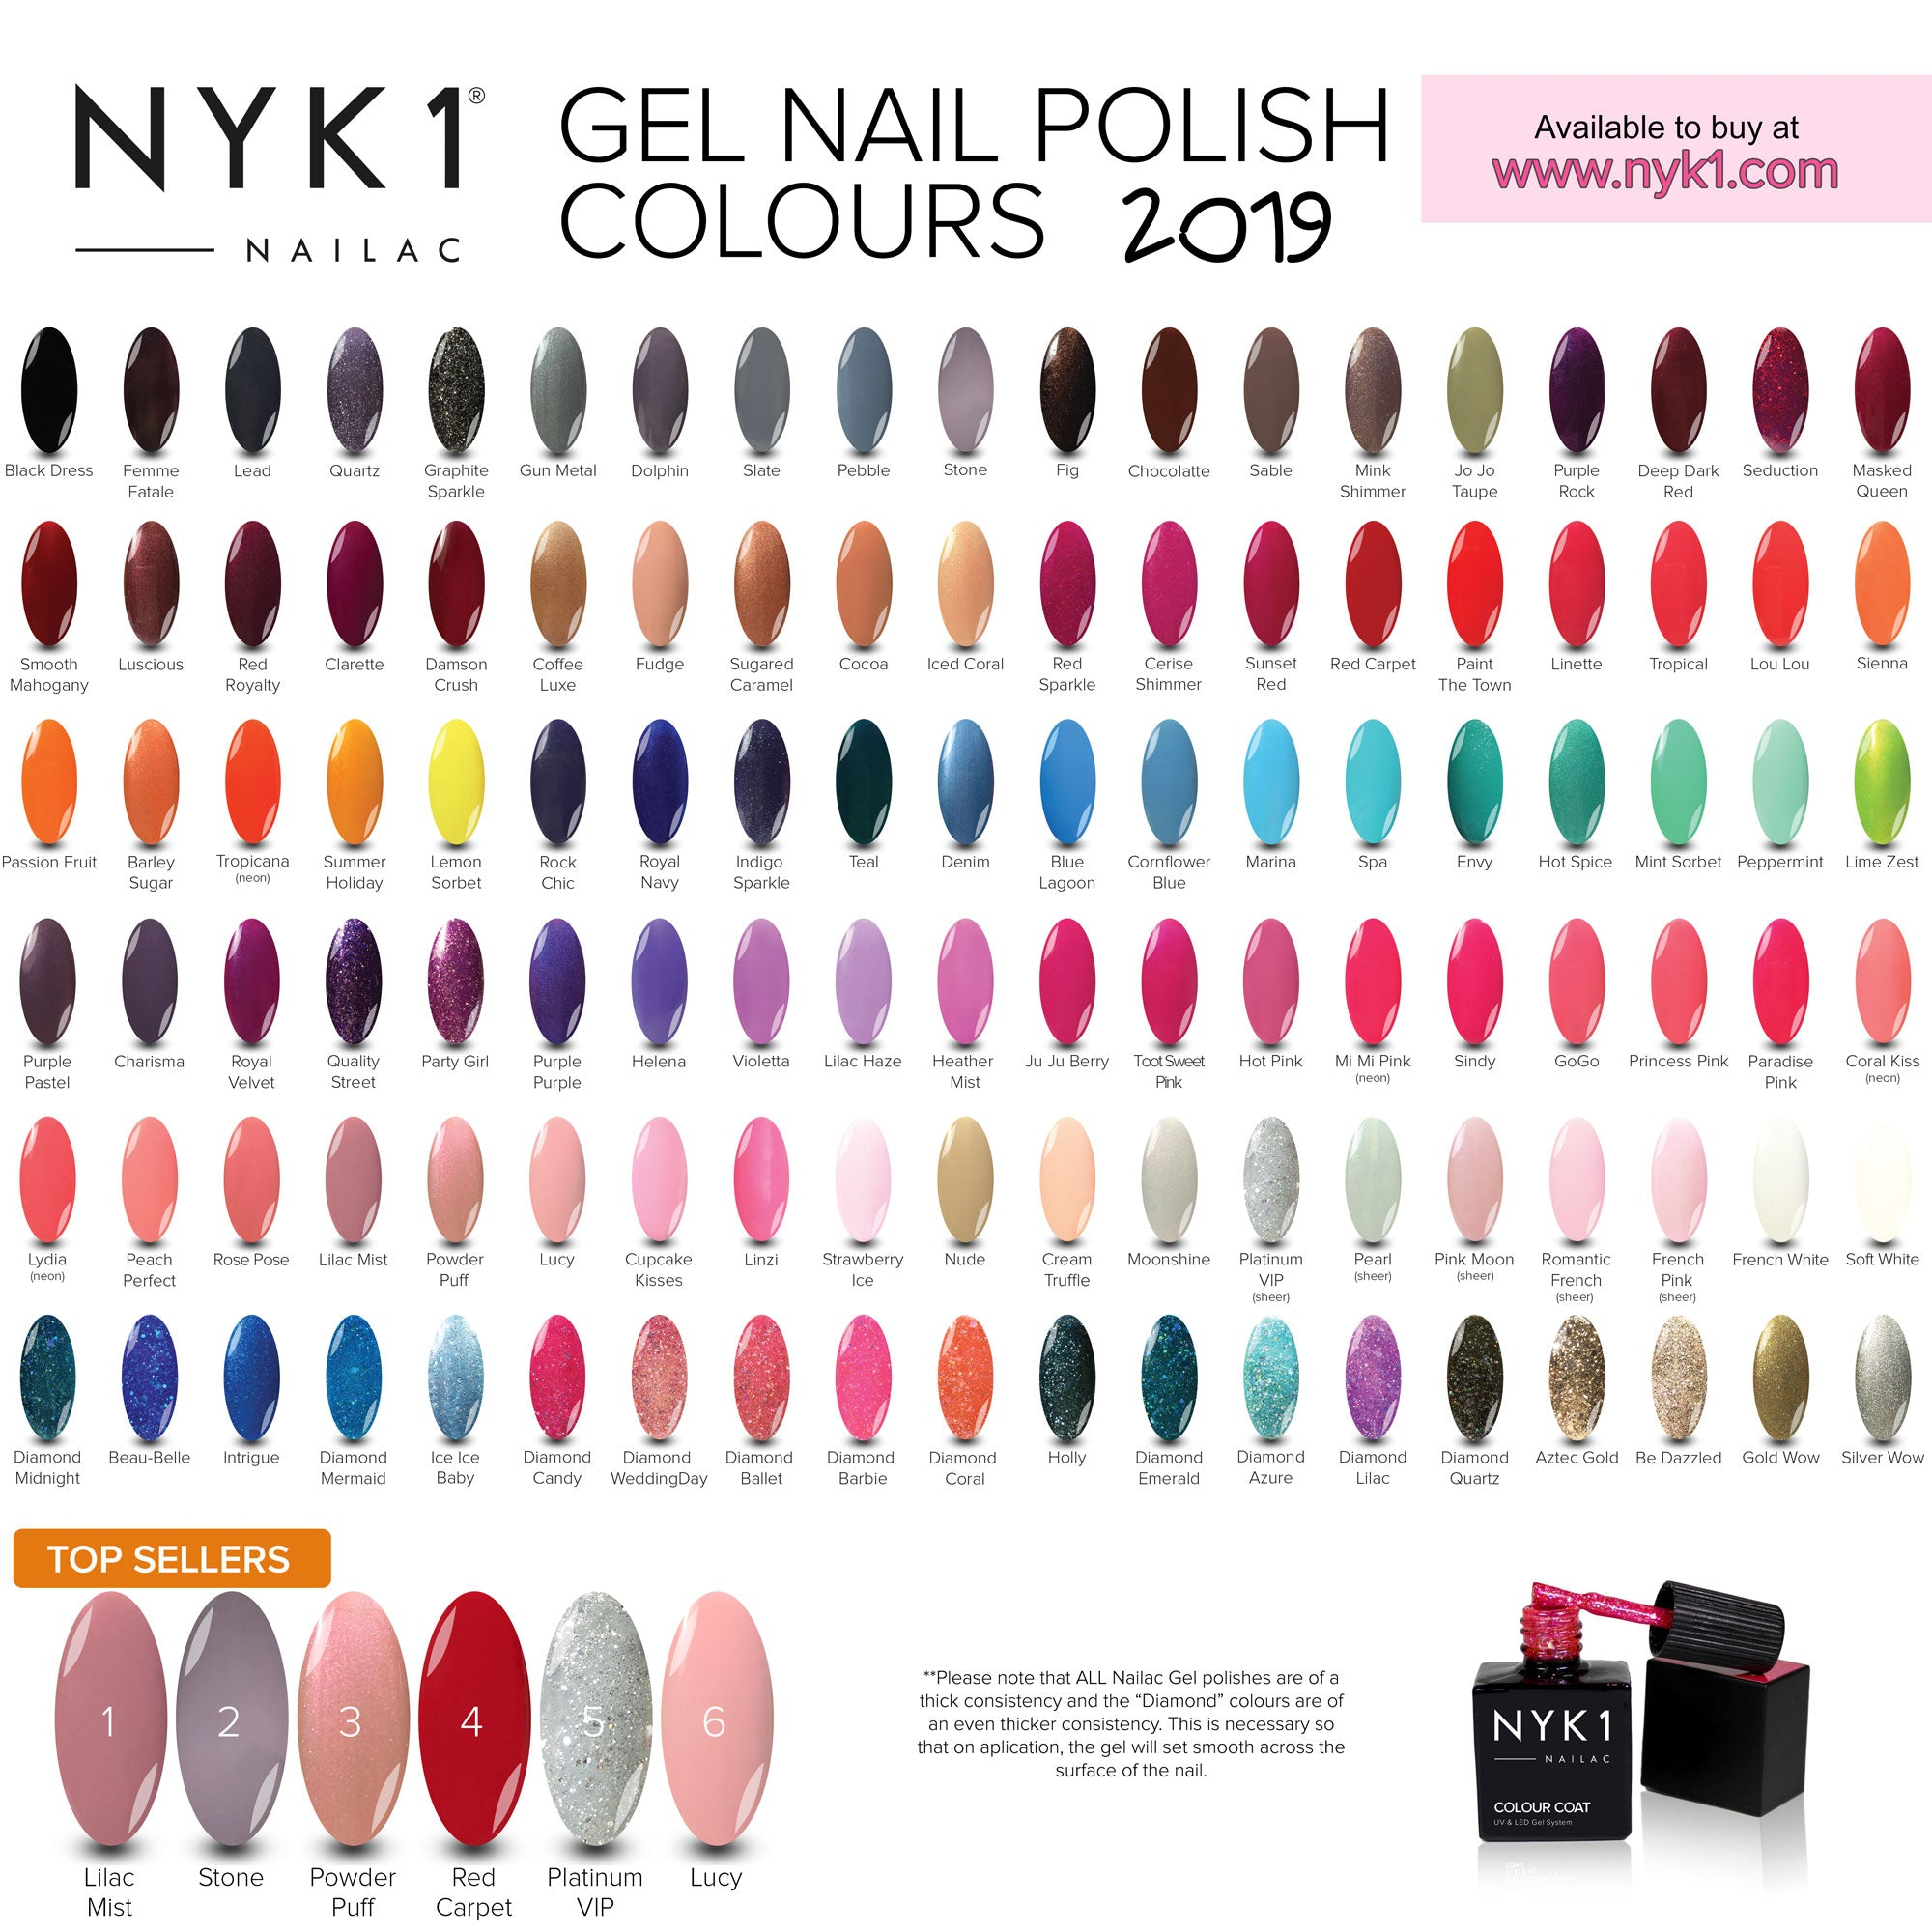 nyk1 gel nail polish nailac colour chart